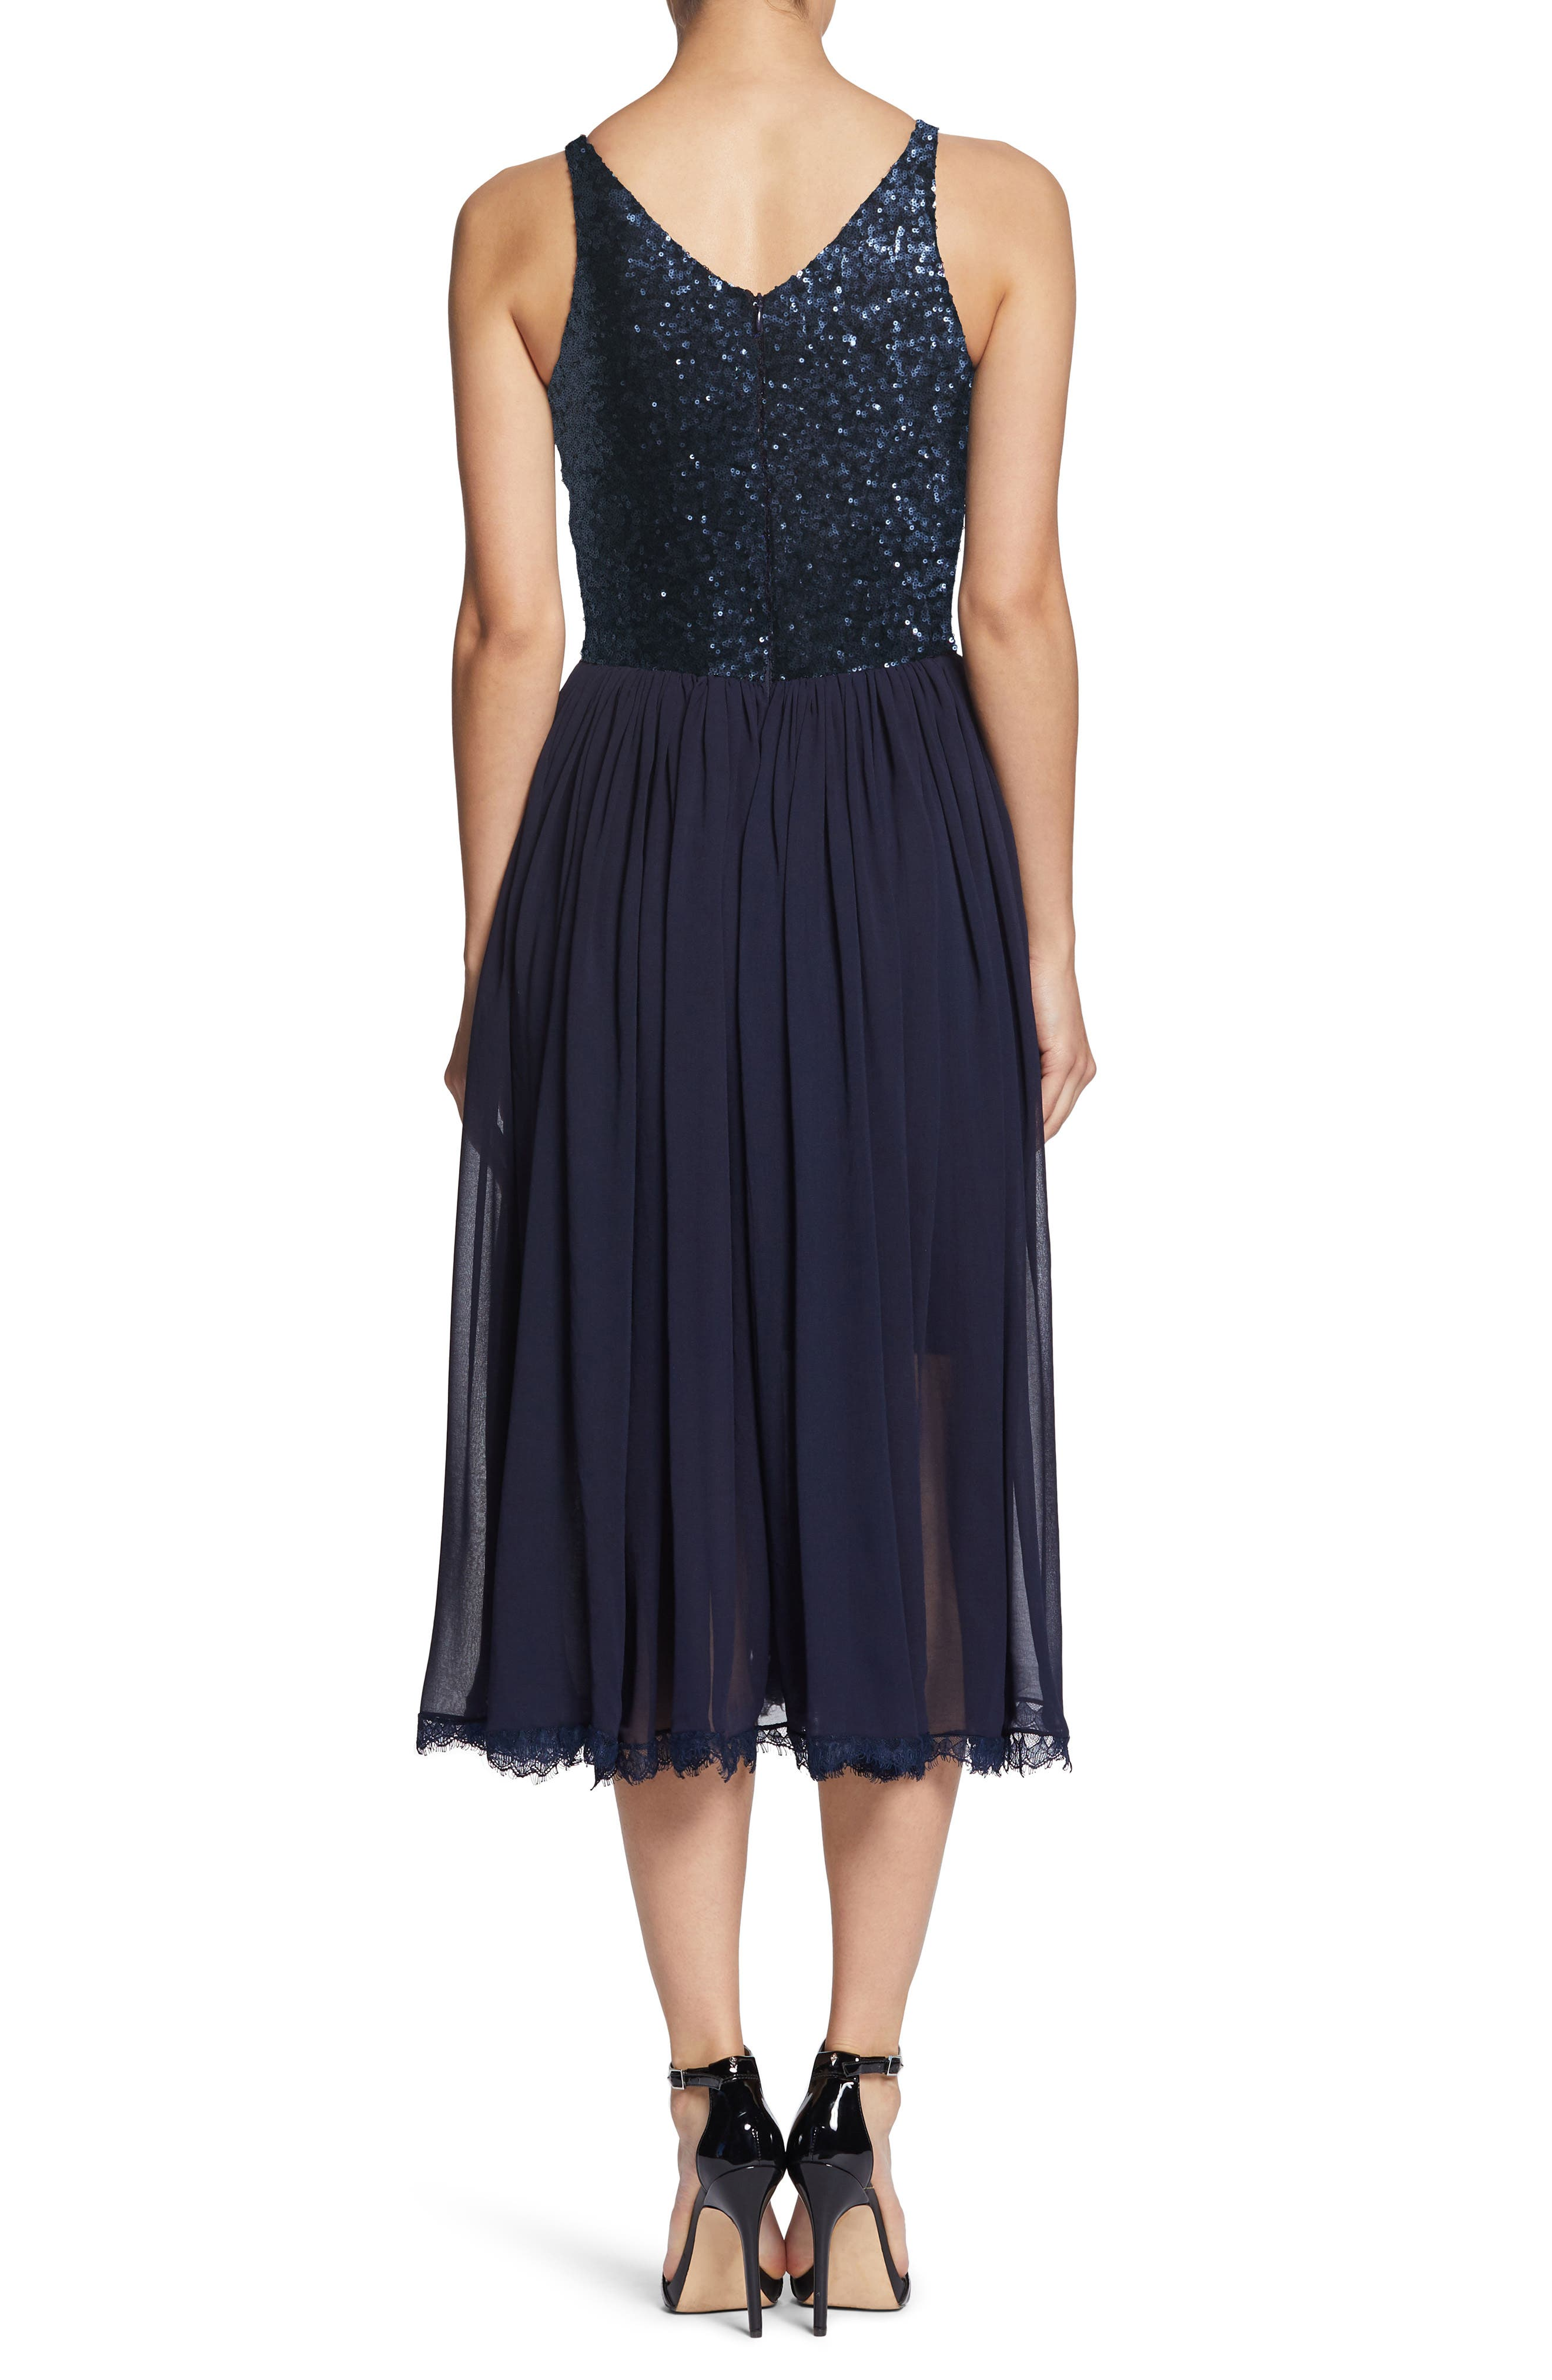 Tracy Plunging Sequin Bodice Tea Length Dress,                             Alternate thumbnail 2, color,                             Navy